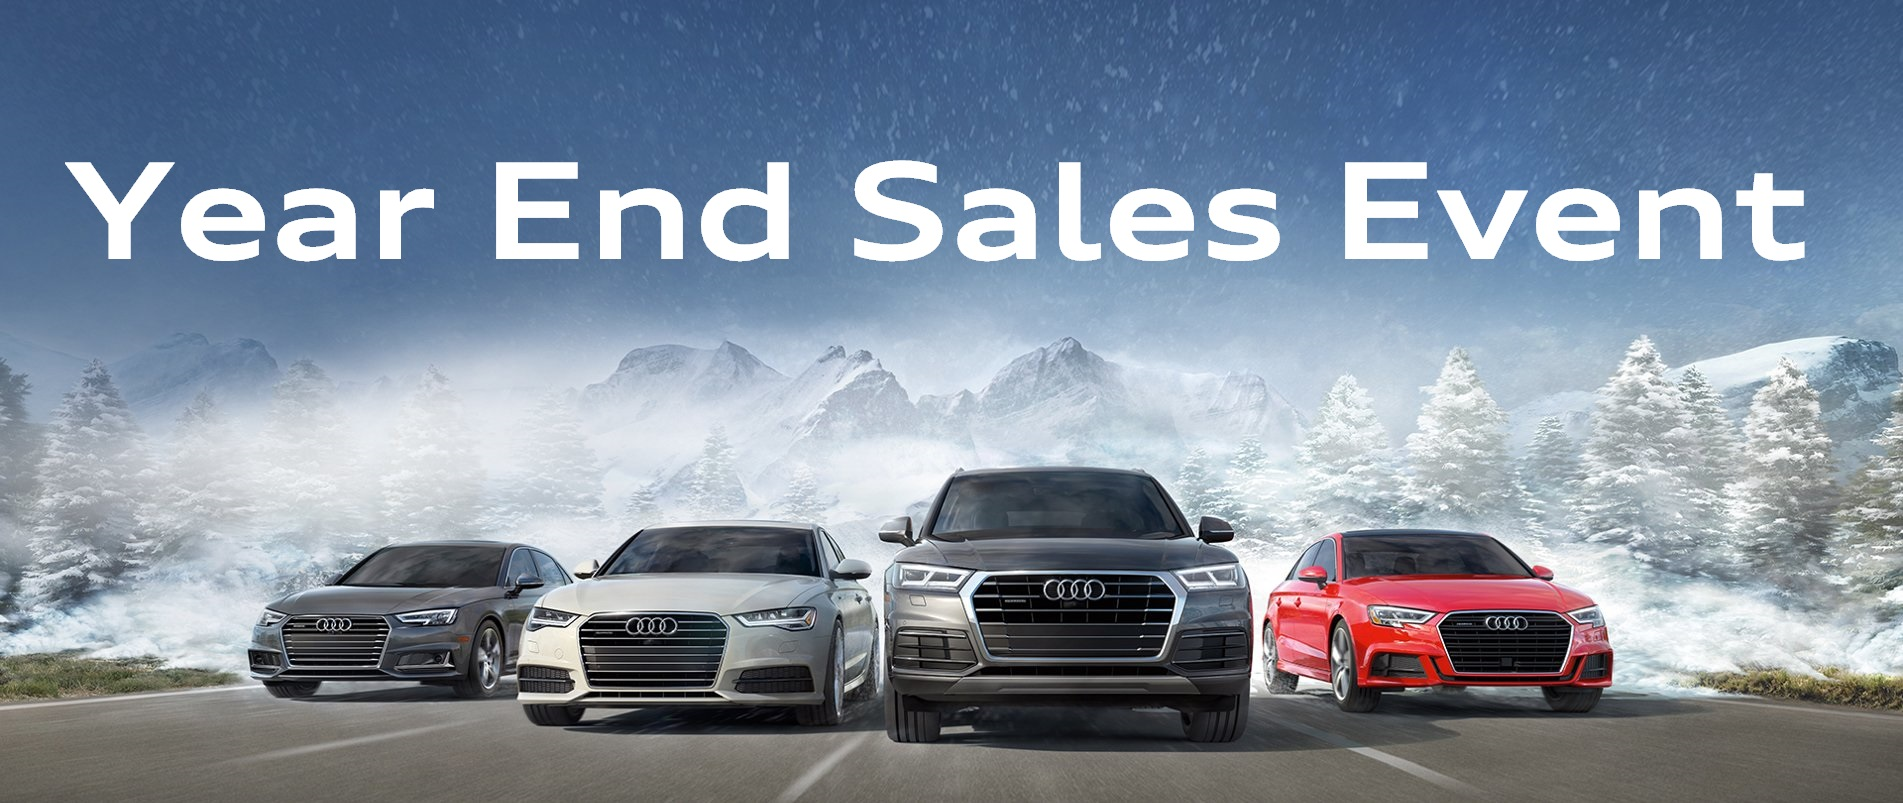 Year End Sales Event 2017